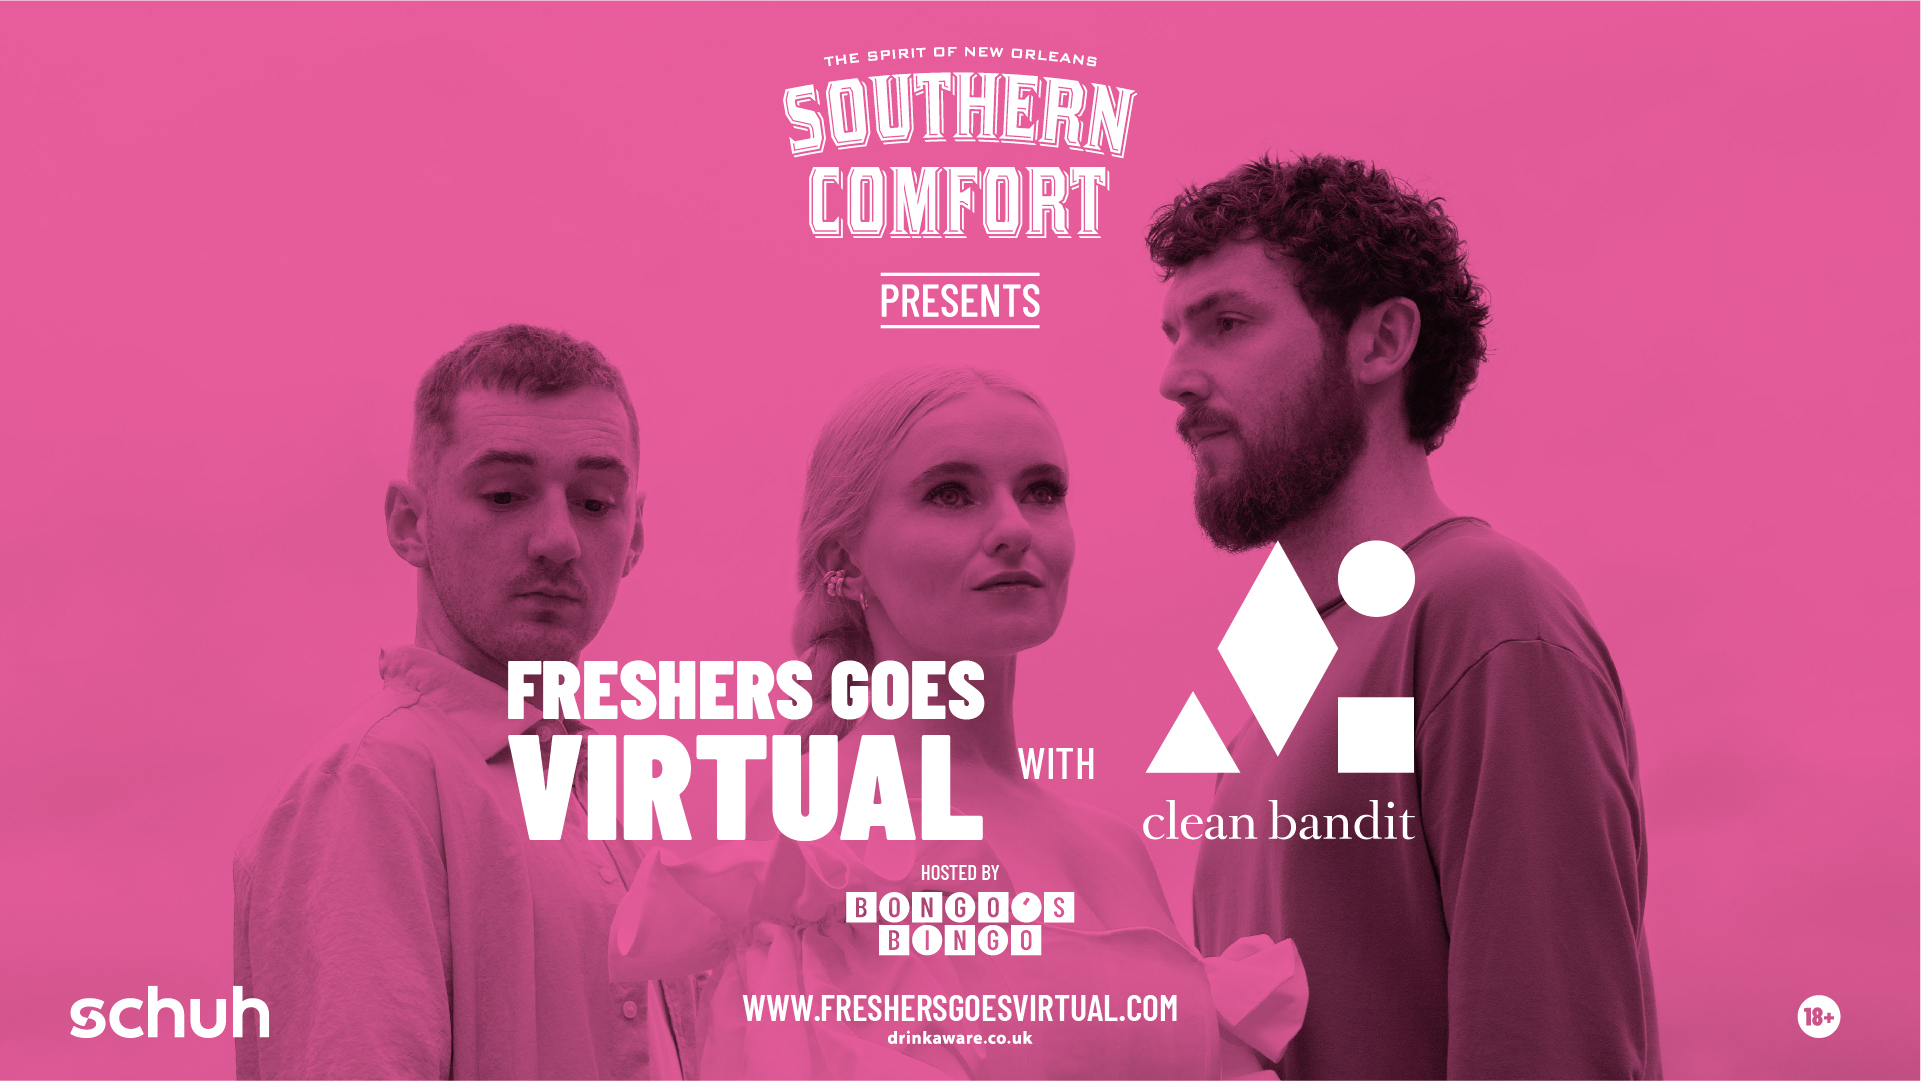 FRESHERS GOES VIRTUAL